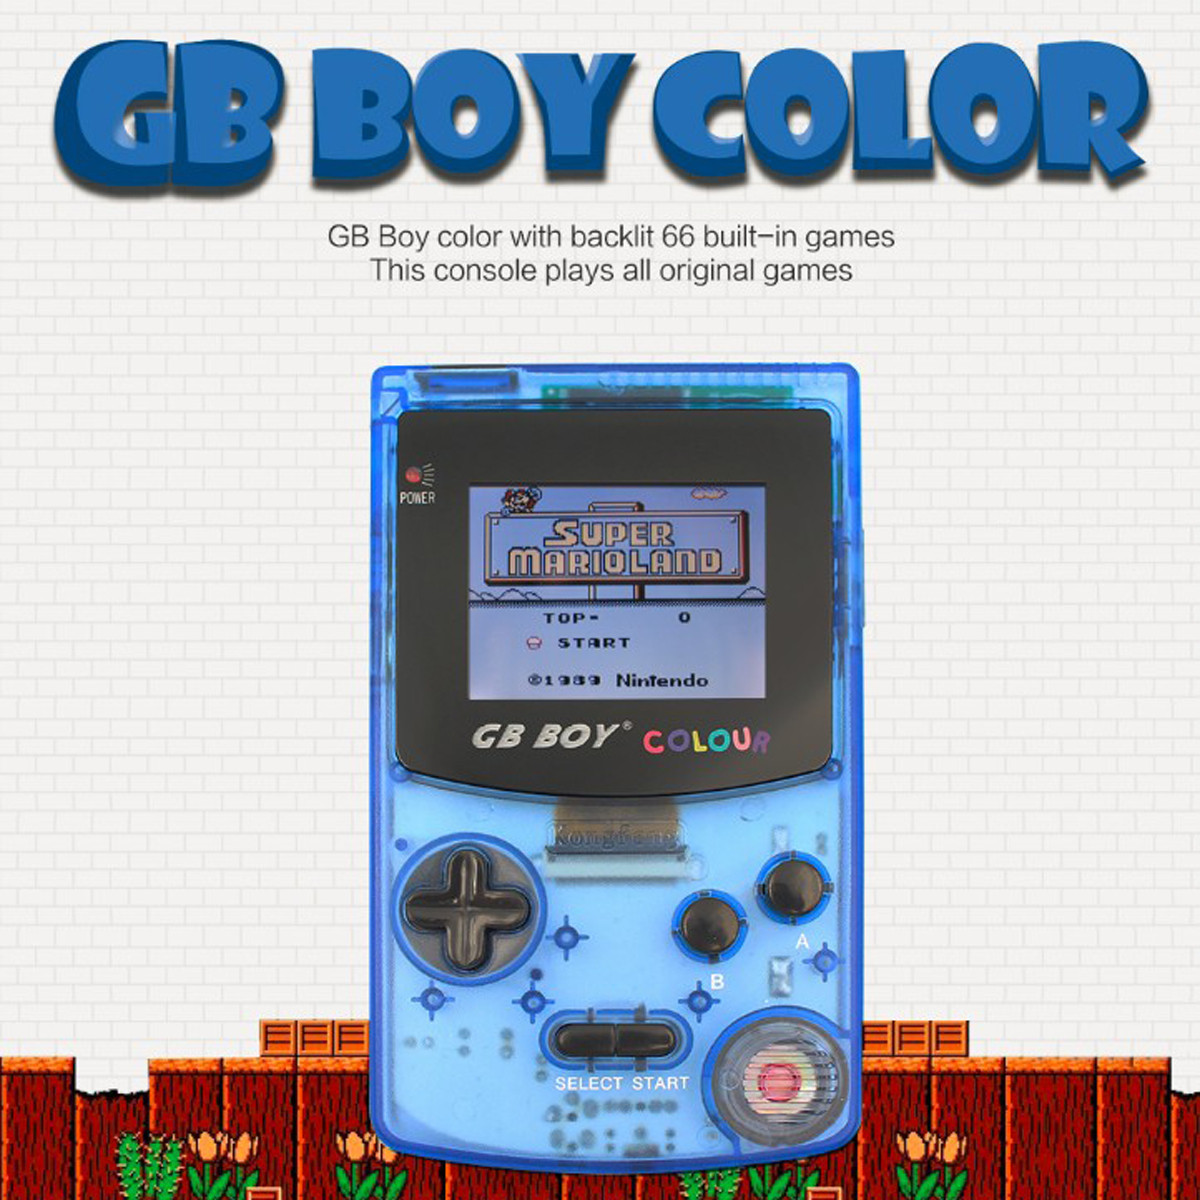 GB Boy Classic Color Colour Handheld Game Console with Games Player ...